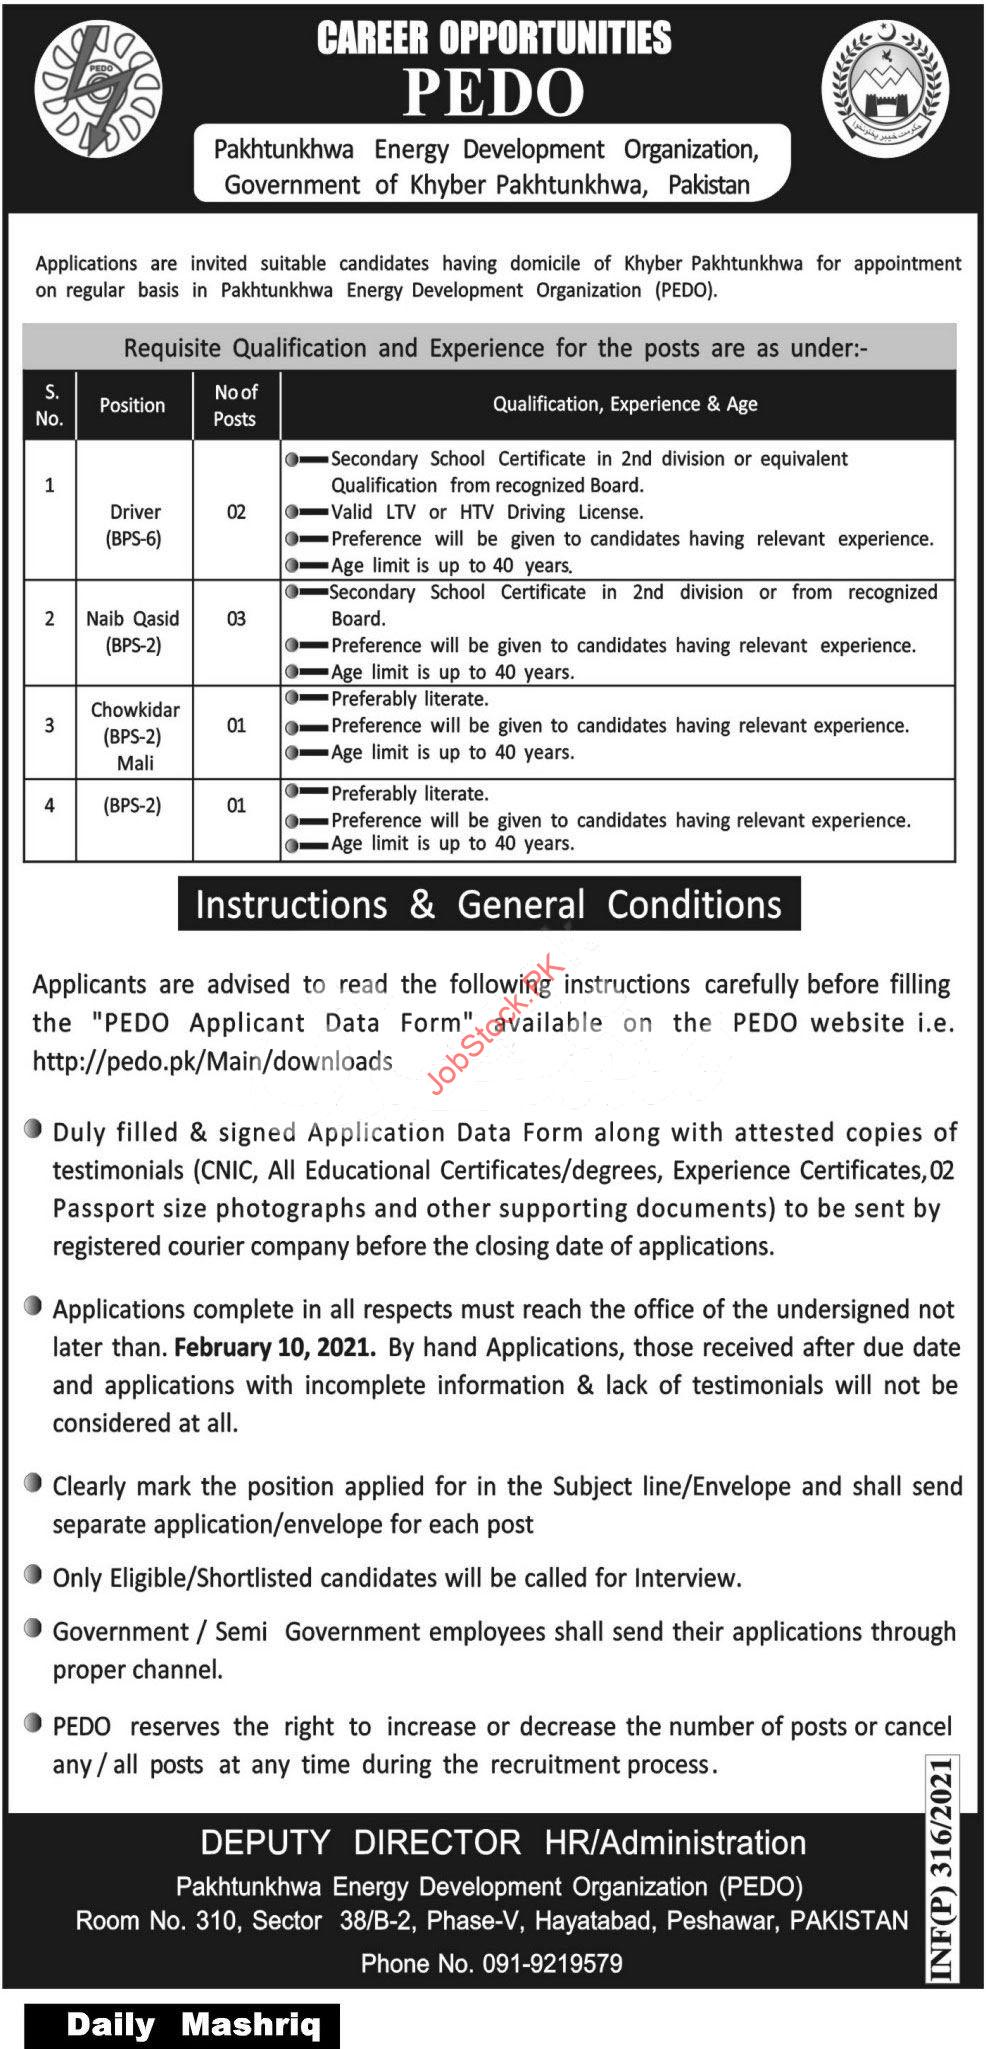 Pakhtunkhwa Energy Development Organization Pedo Jobs 2021 Latest